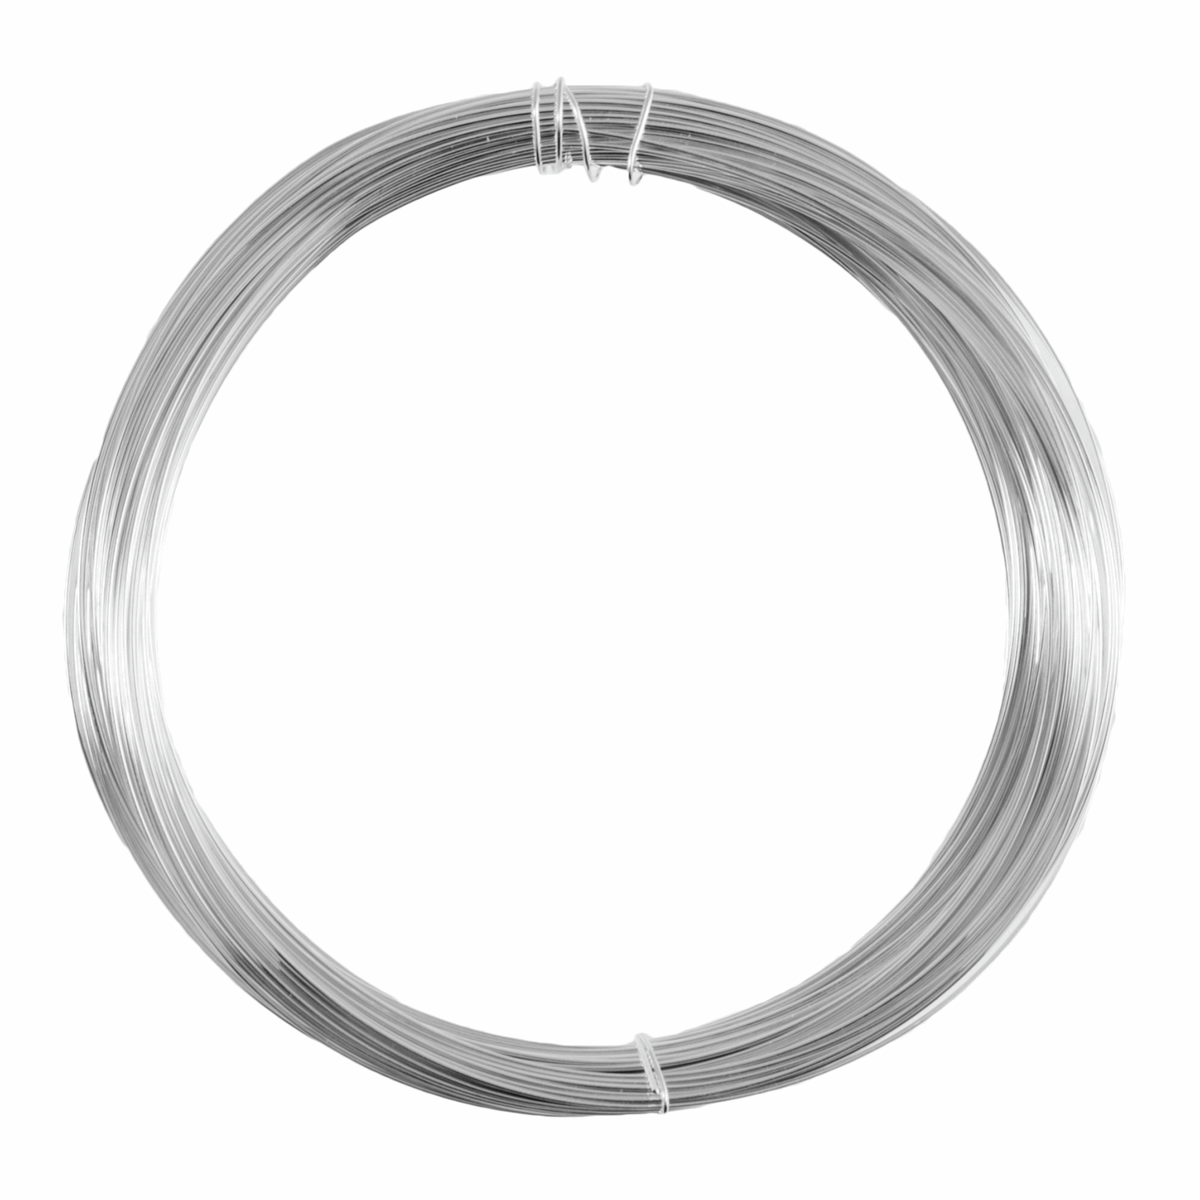 Picture of Wire: 1 Pack of 20m x 0.4mm: Silver Plated